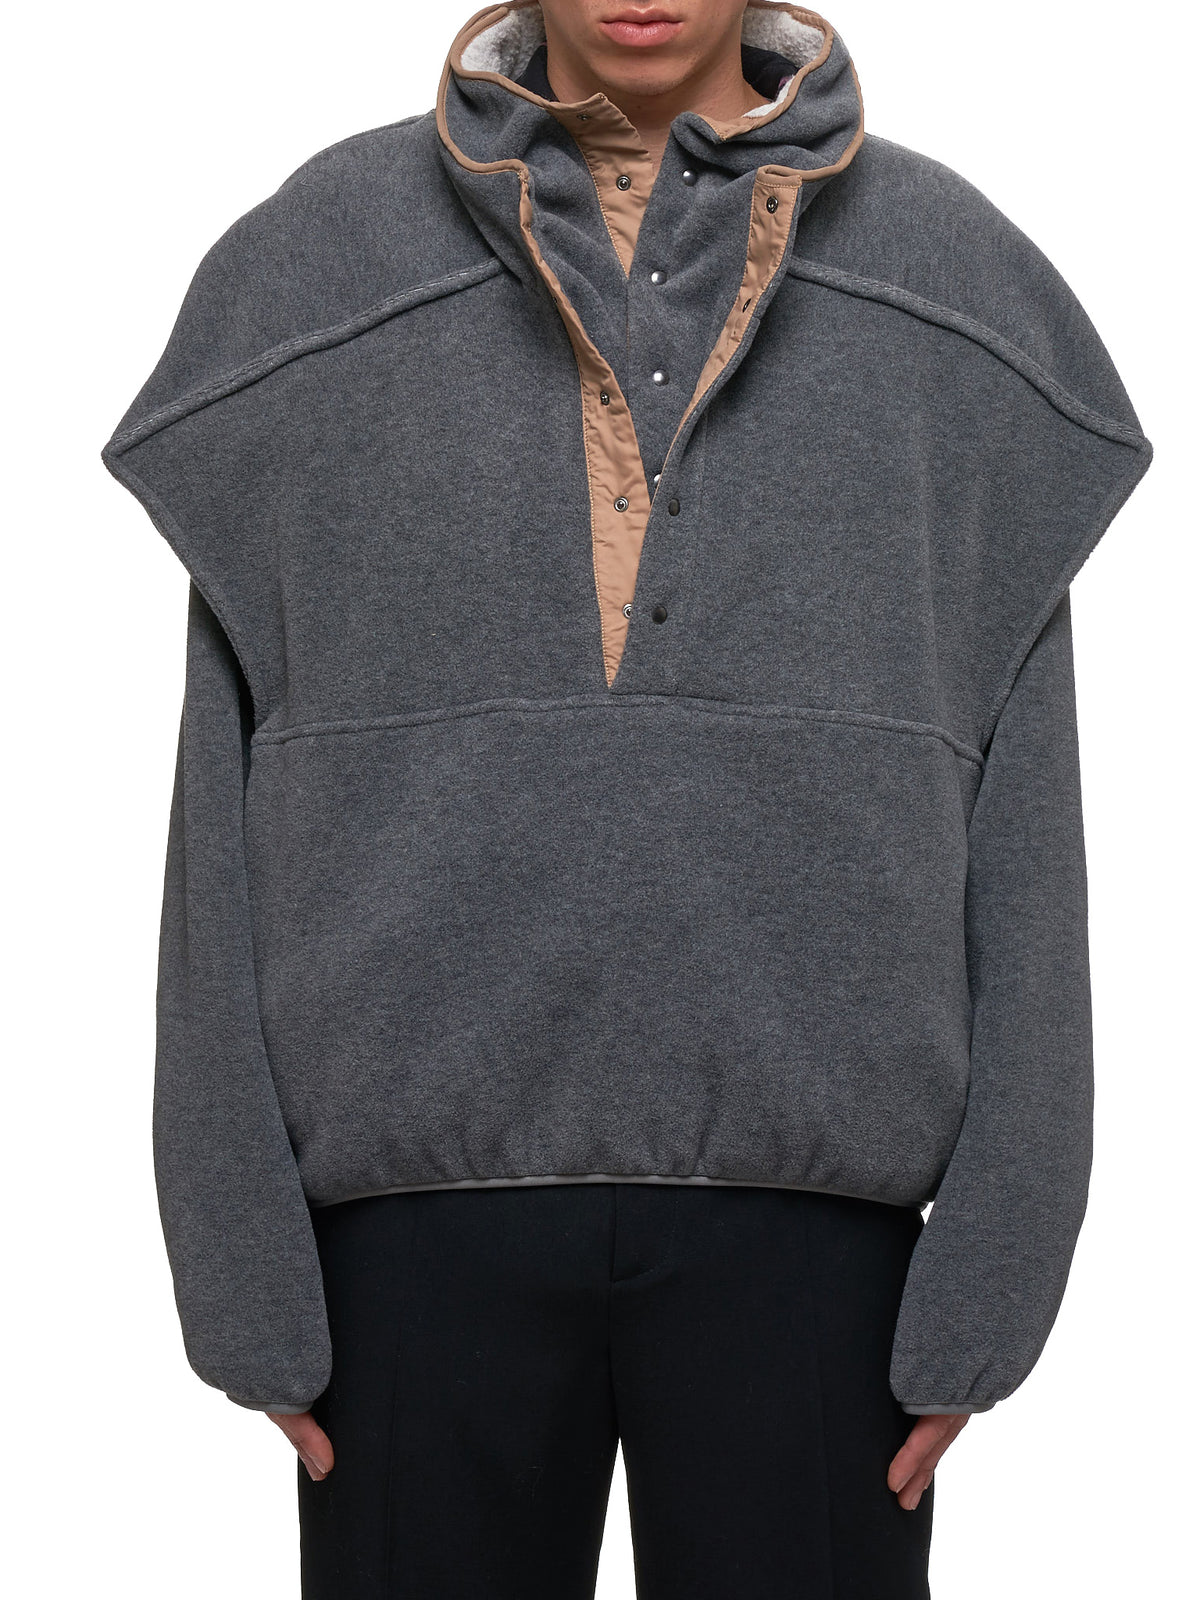 Double-Collar Sweater (JACK50-S17-F57-DARK-GREY)